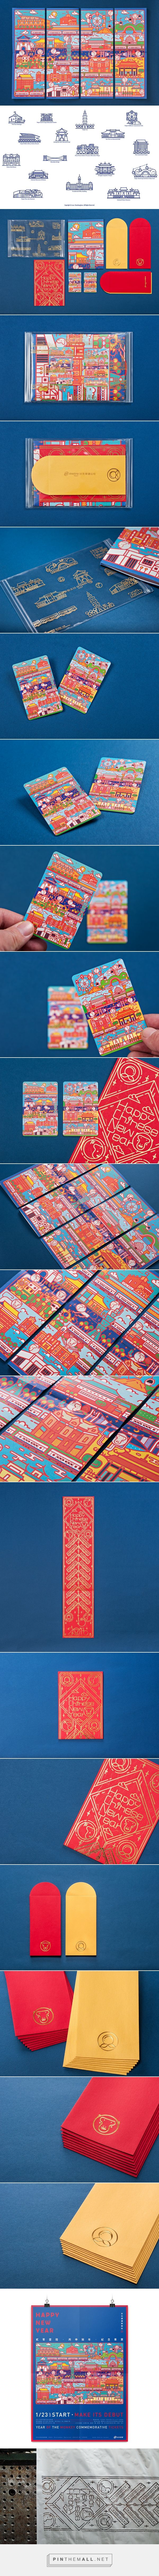 Taipei Metro / Year of the Monkey Commemorative Tickets on Behance - created via https://pinthemall.net